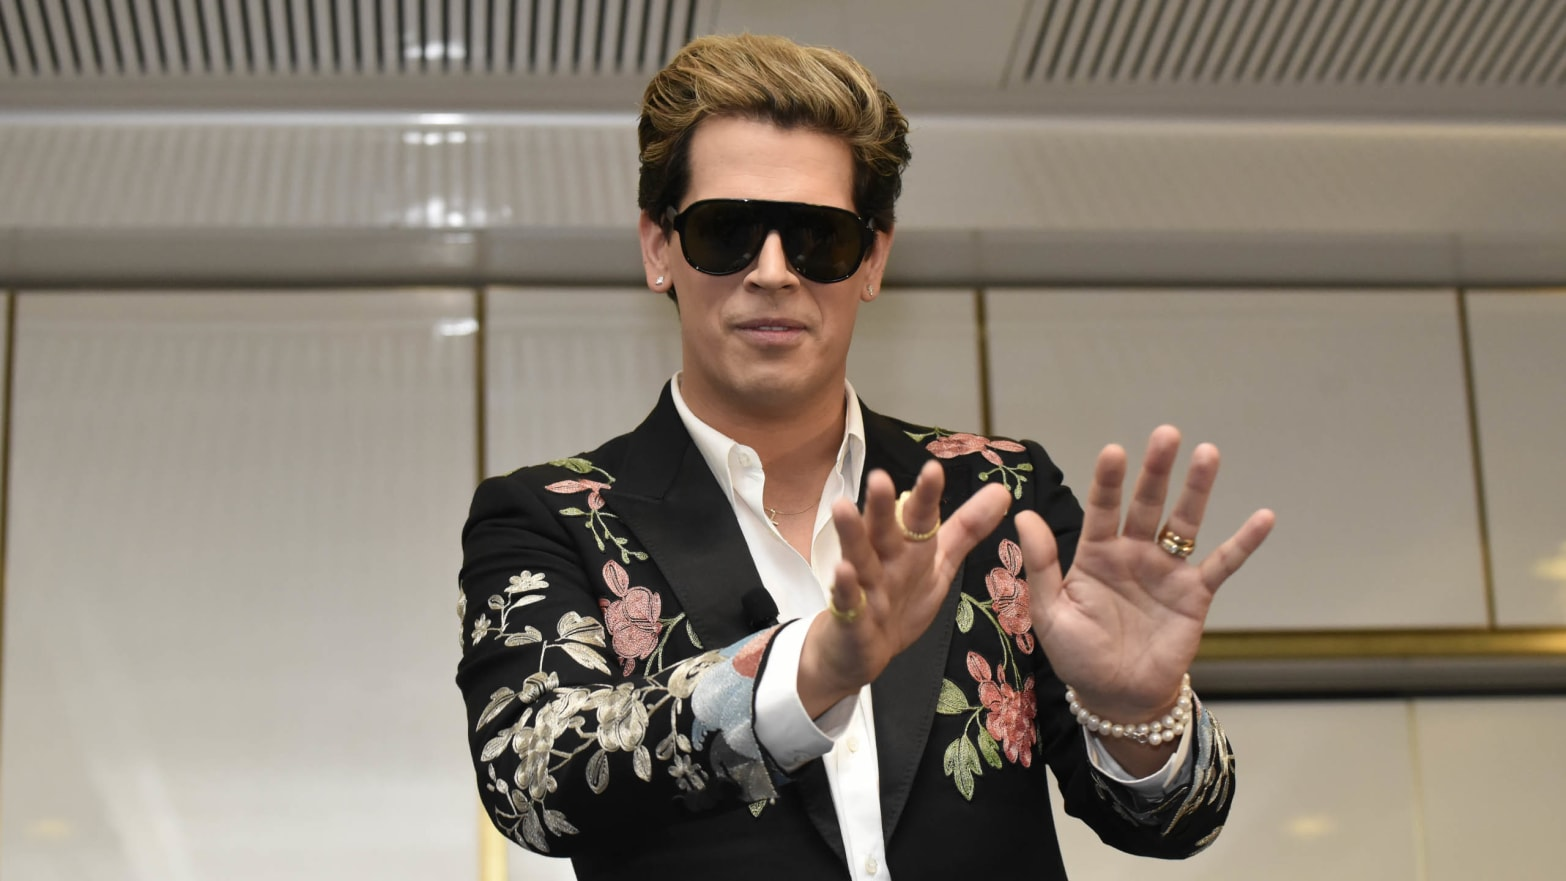 Milo Yiannopoulos Wedding.Milo Yiannopoulos Alleged To Be More Than 2 Million In Debt